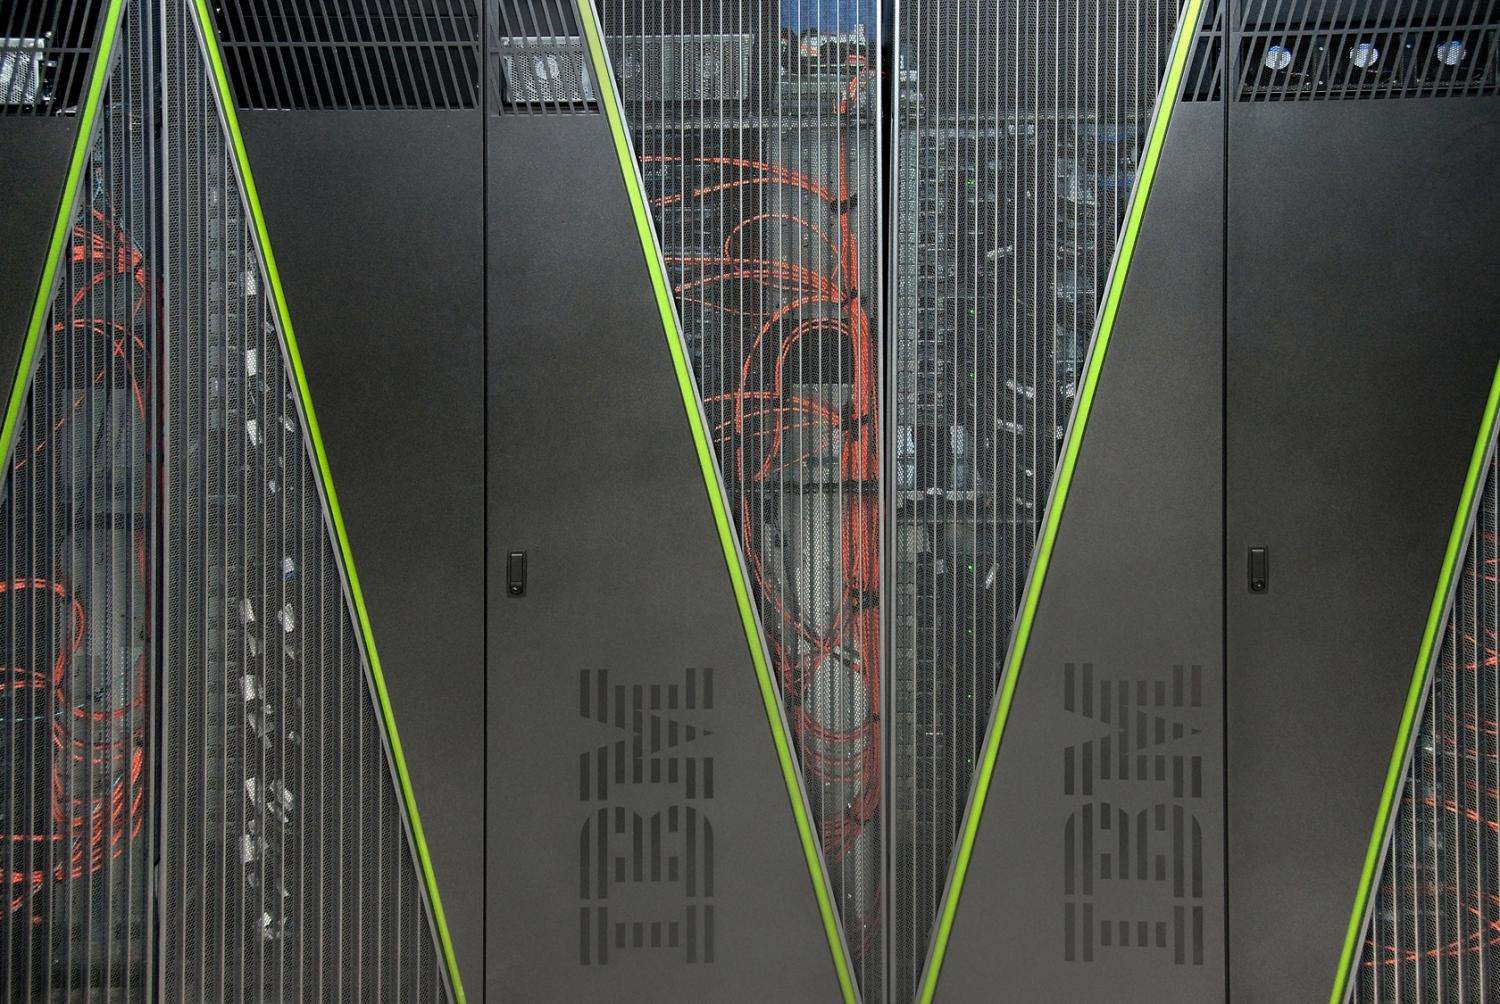 Supercomputing the strange difference between matter and antimatter